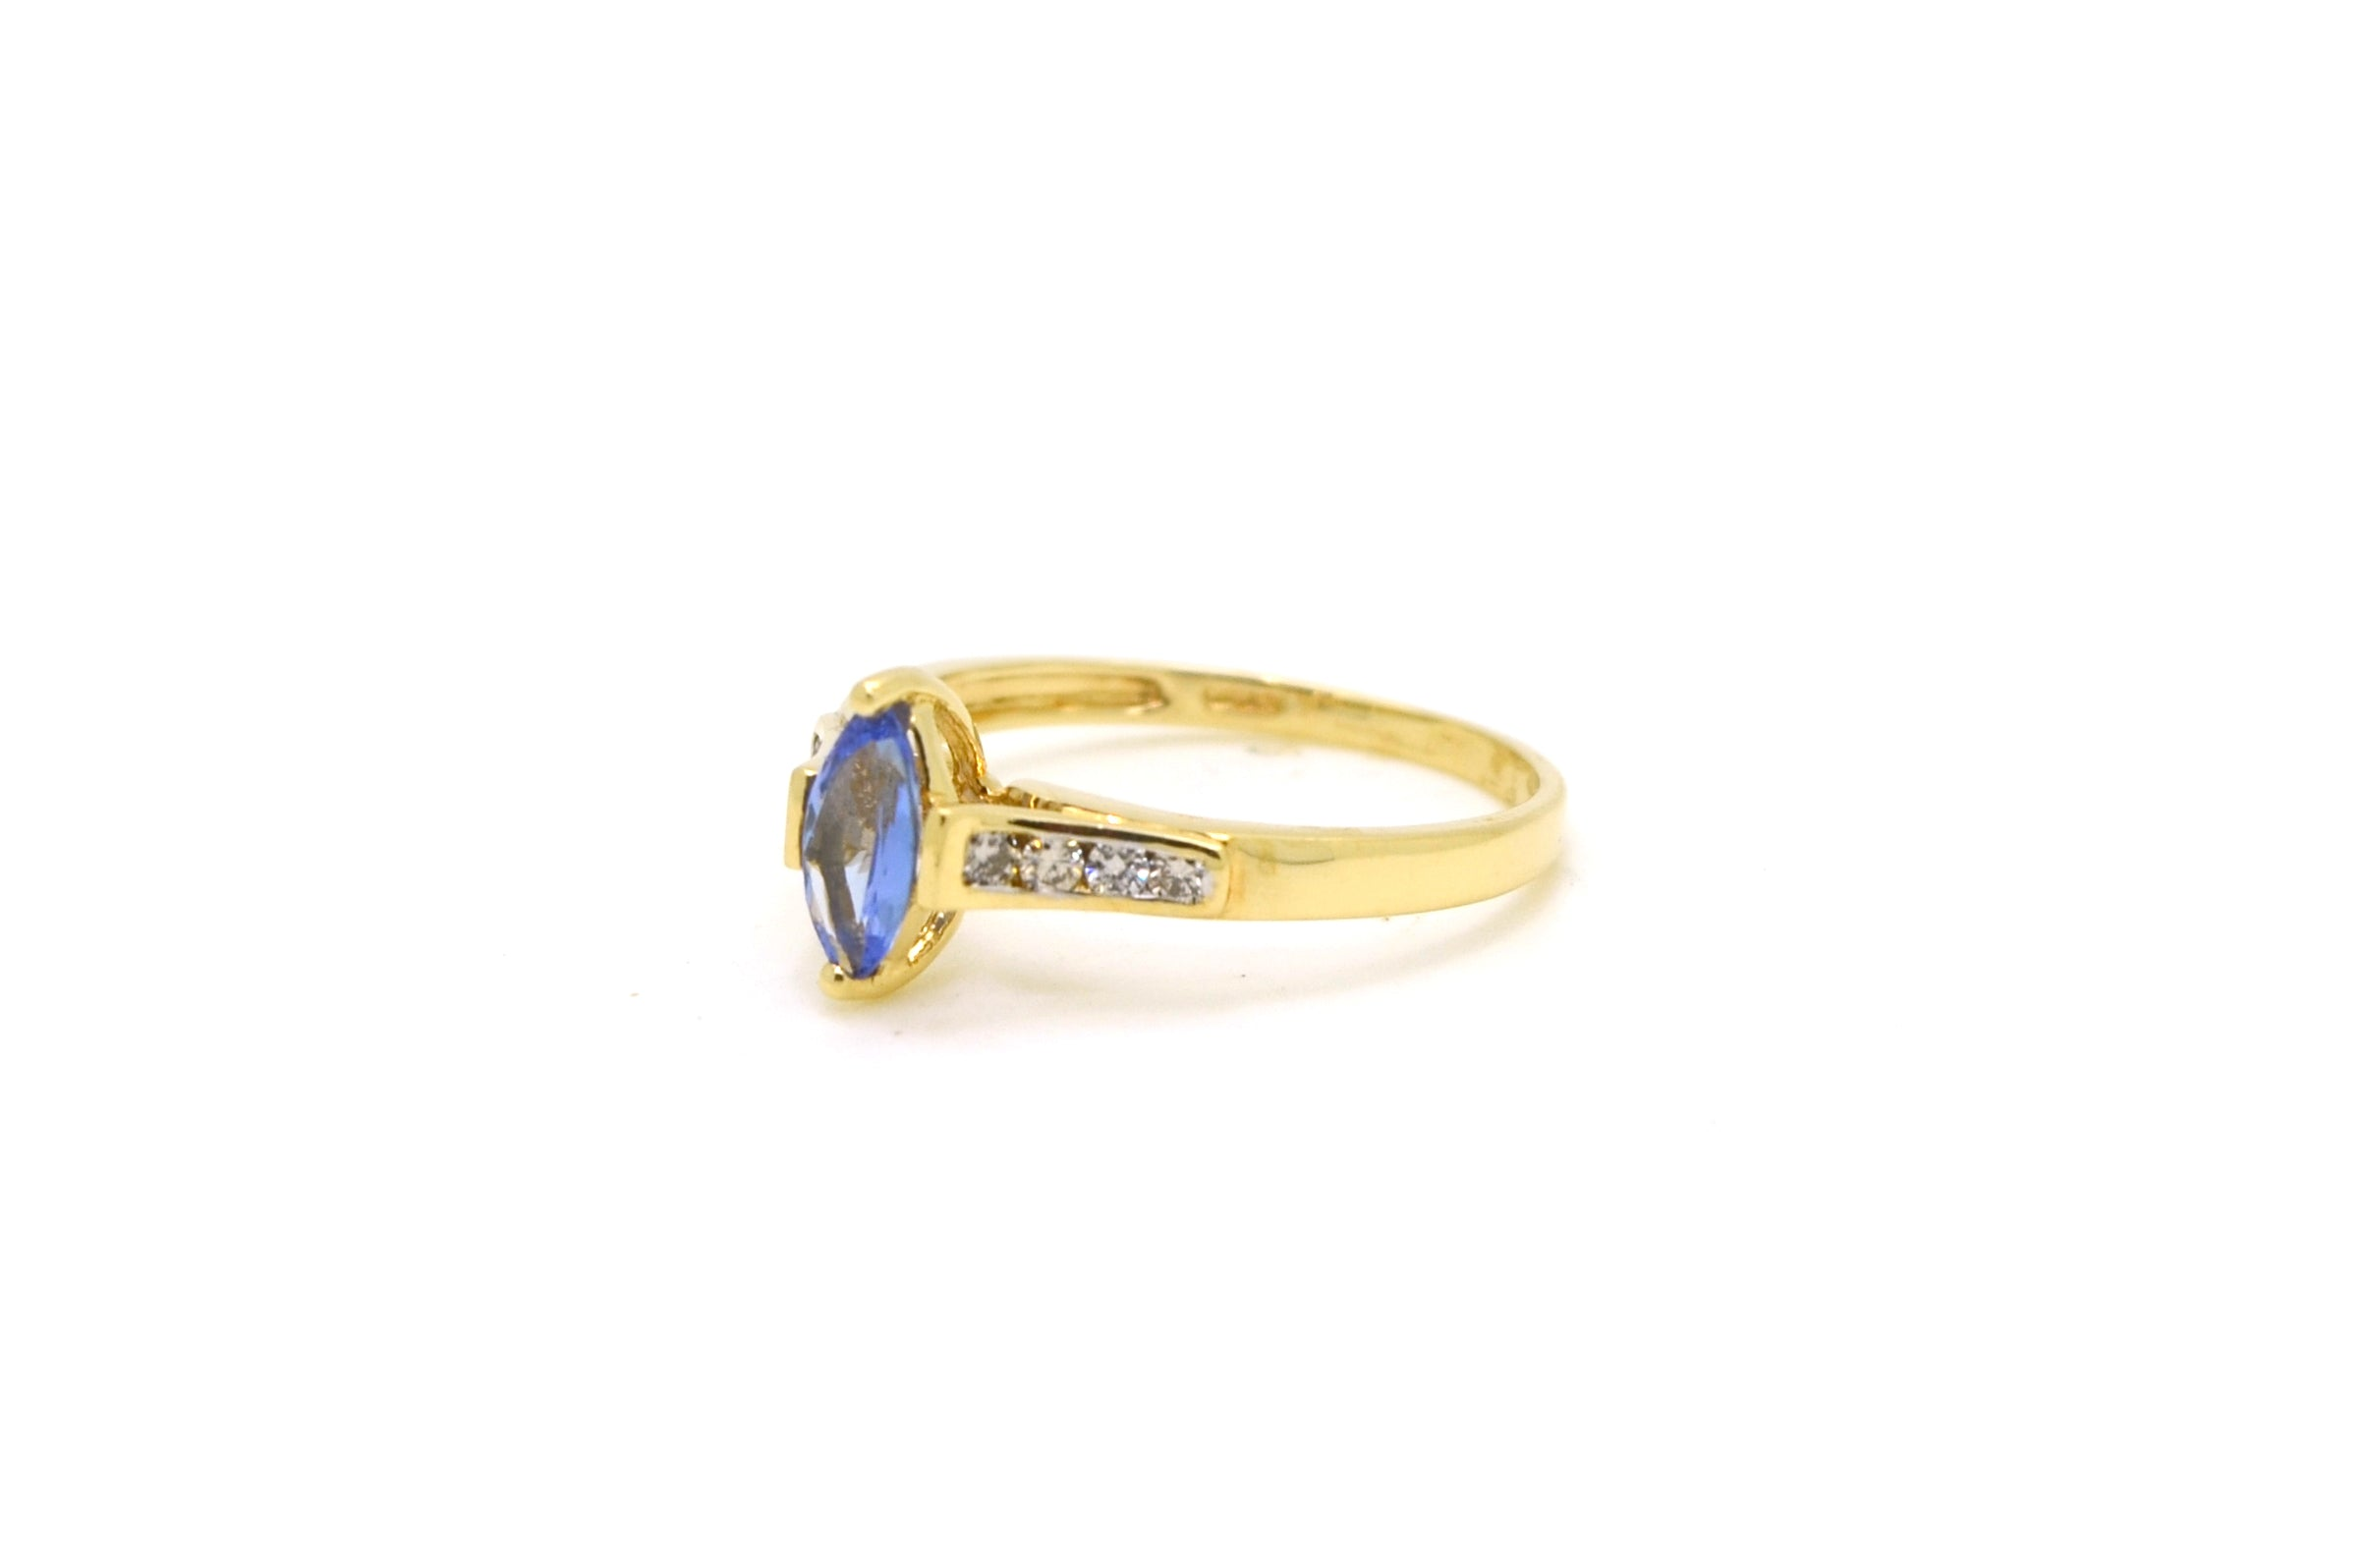 14k Yellow Gold Marquise Tanzanite & Diamond Ring - .50 ct. total - Size 7